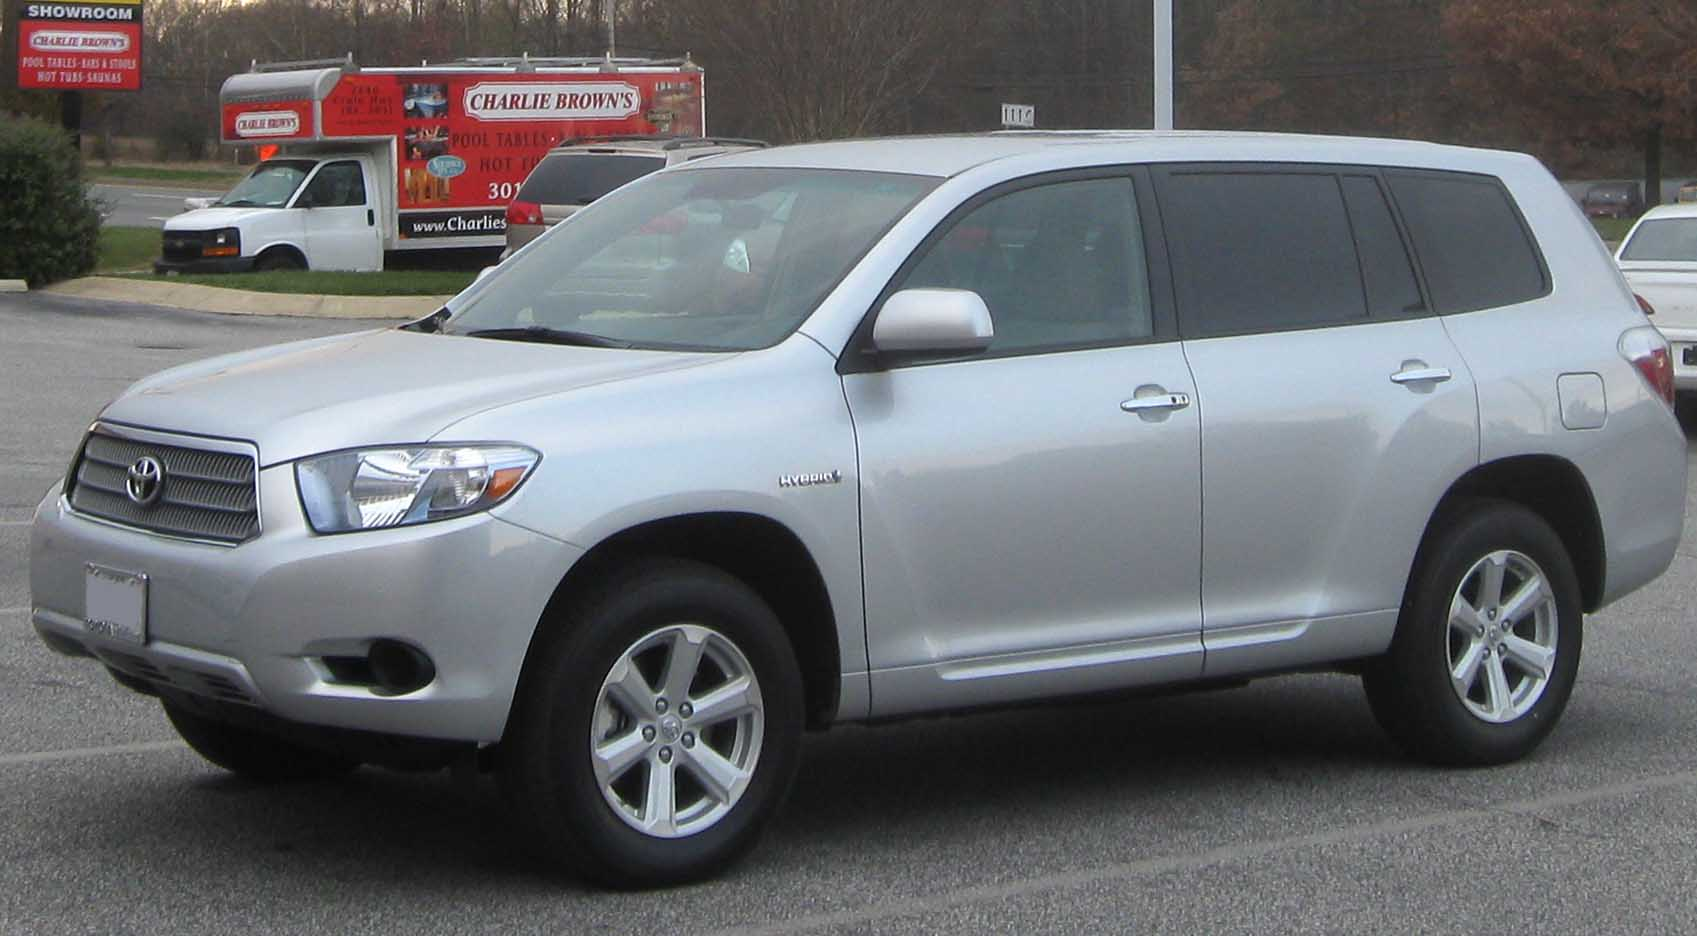 Superb File:2nd Toyota Highlander Hybrid